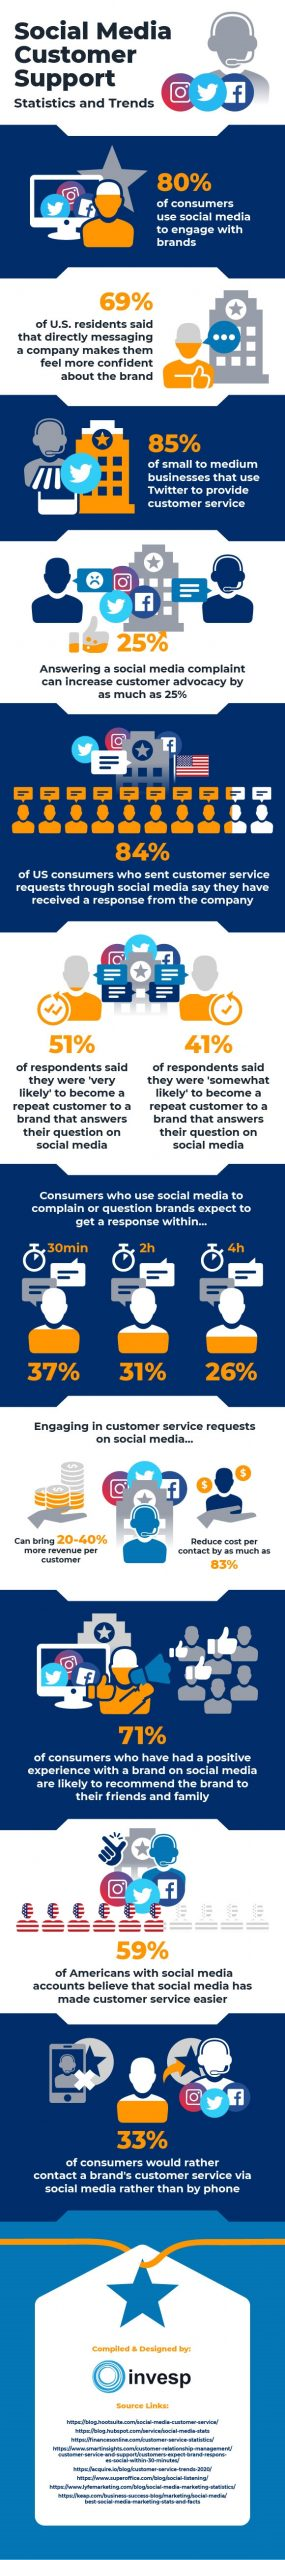 How Social Media is Changing Customer Service [Infographic]